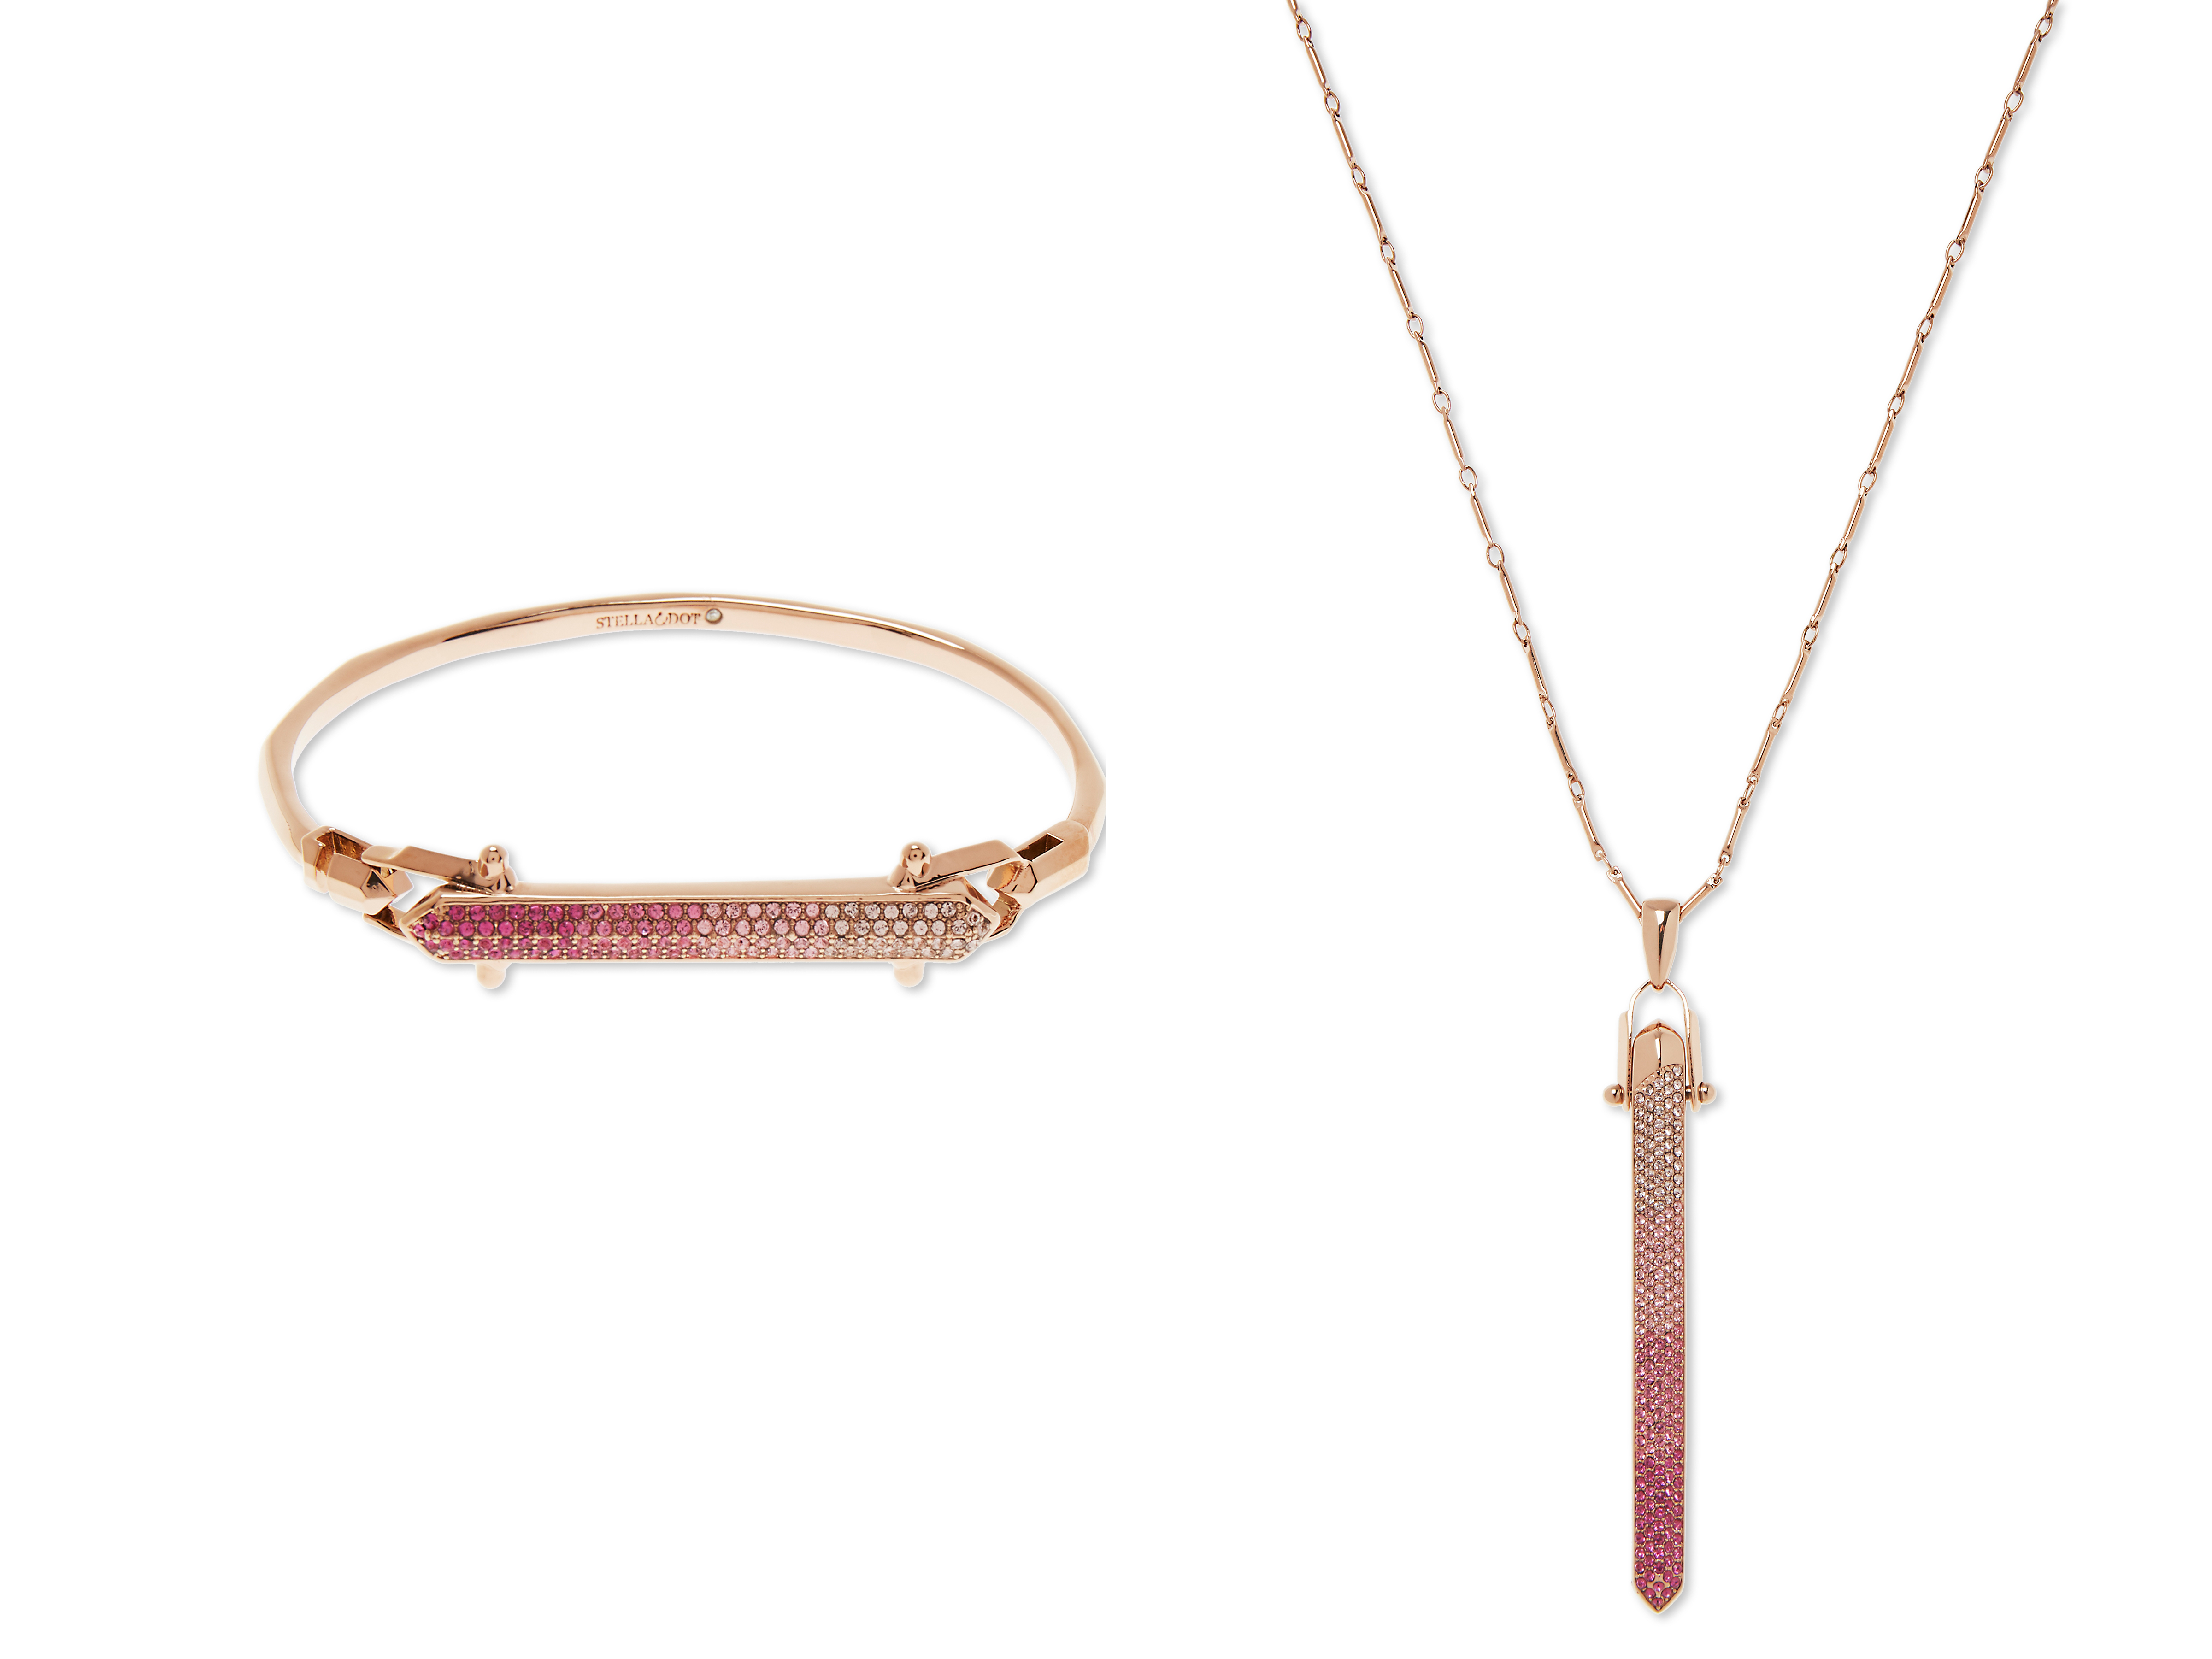 The pink ombré jewelry collection was made especially for this campaign, but the pieces are so beautiful you'll want to wear them all year.What they're donating: Stella & Dot will donate 20% of the retail price from eligible sales from the Breast Cancer Awareness Collection to Bright Pink, an organization focused on prevention and early detection of breast and ovarian cancer in young women.Buy:                                      Rebel Pendant, $149                                      Rebel Bracelet, $99